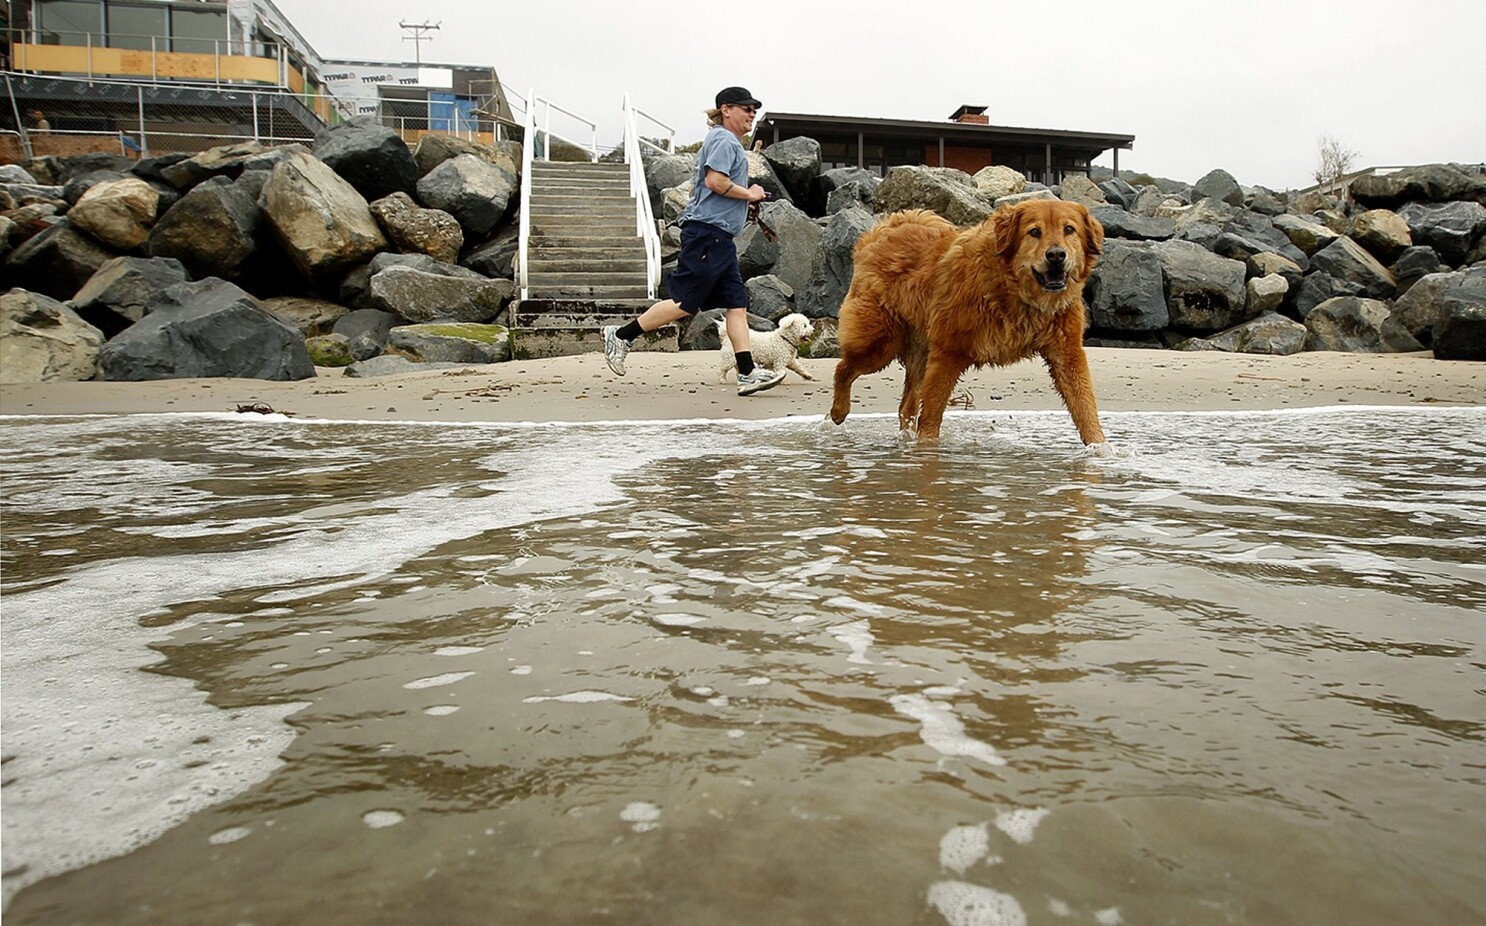 Opinion: Do dogs belong on the beach? That depends on whether you own one